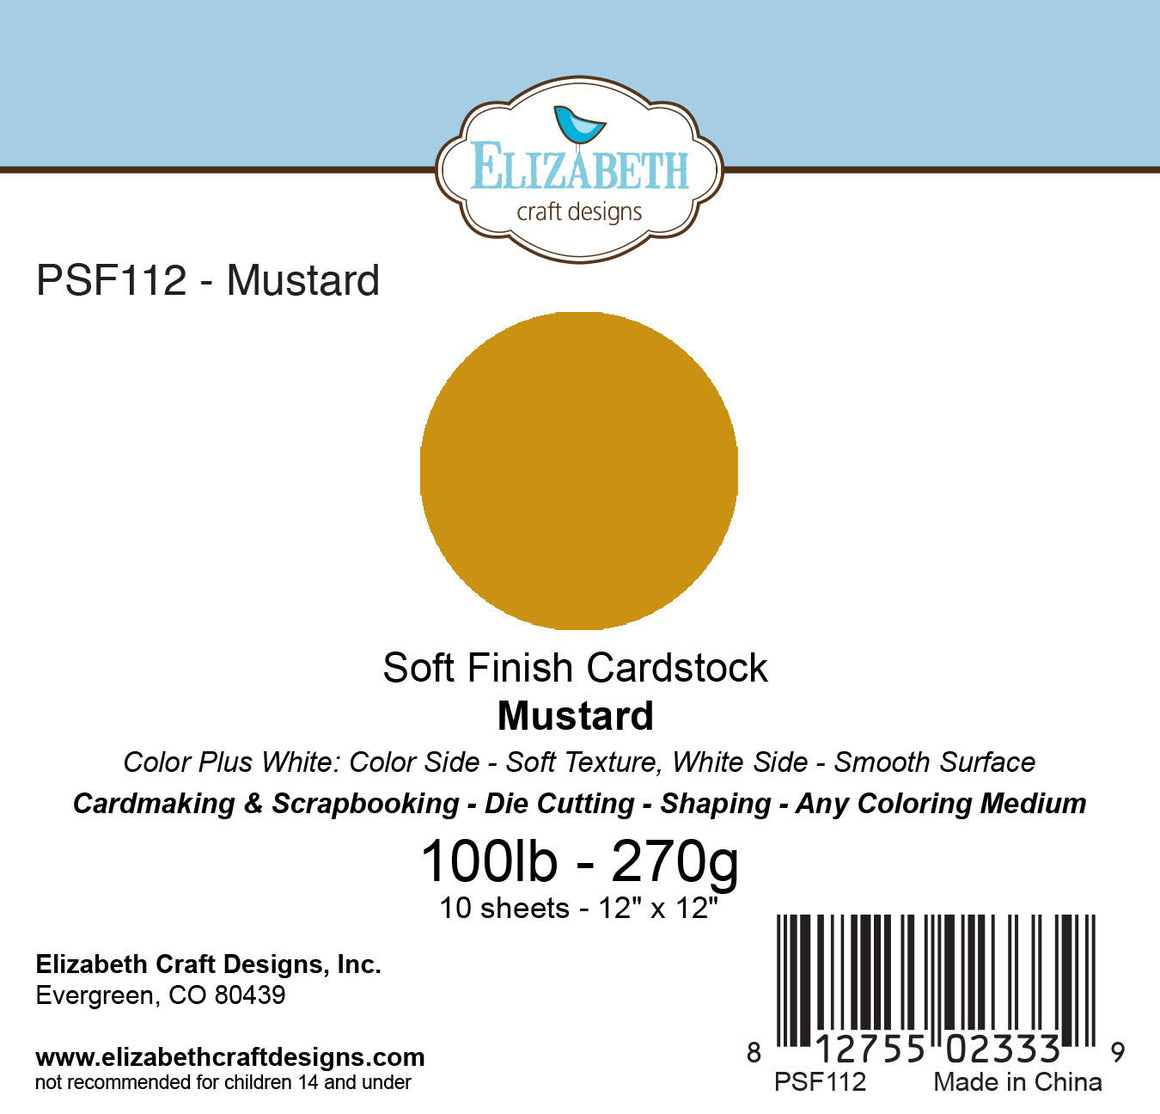 Soft Finish Cardstock, Mustard